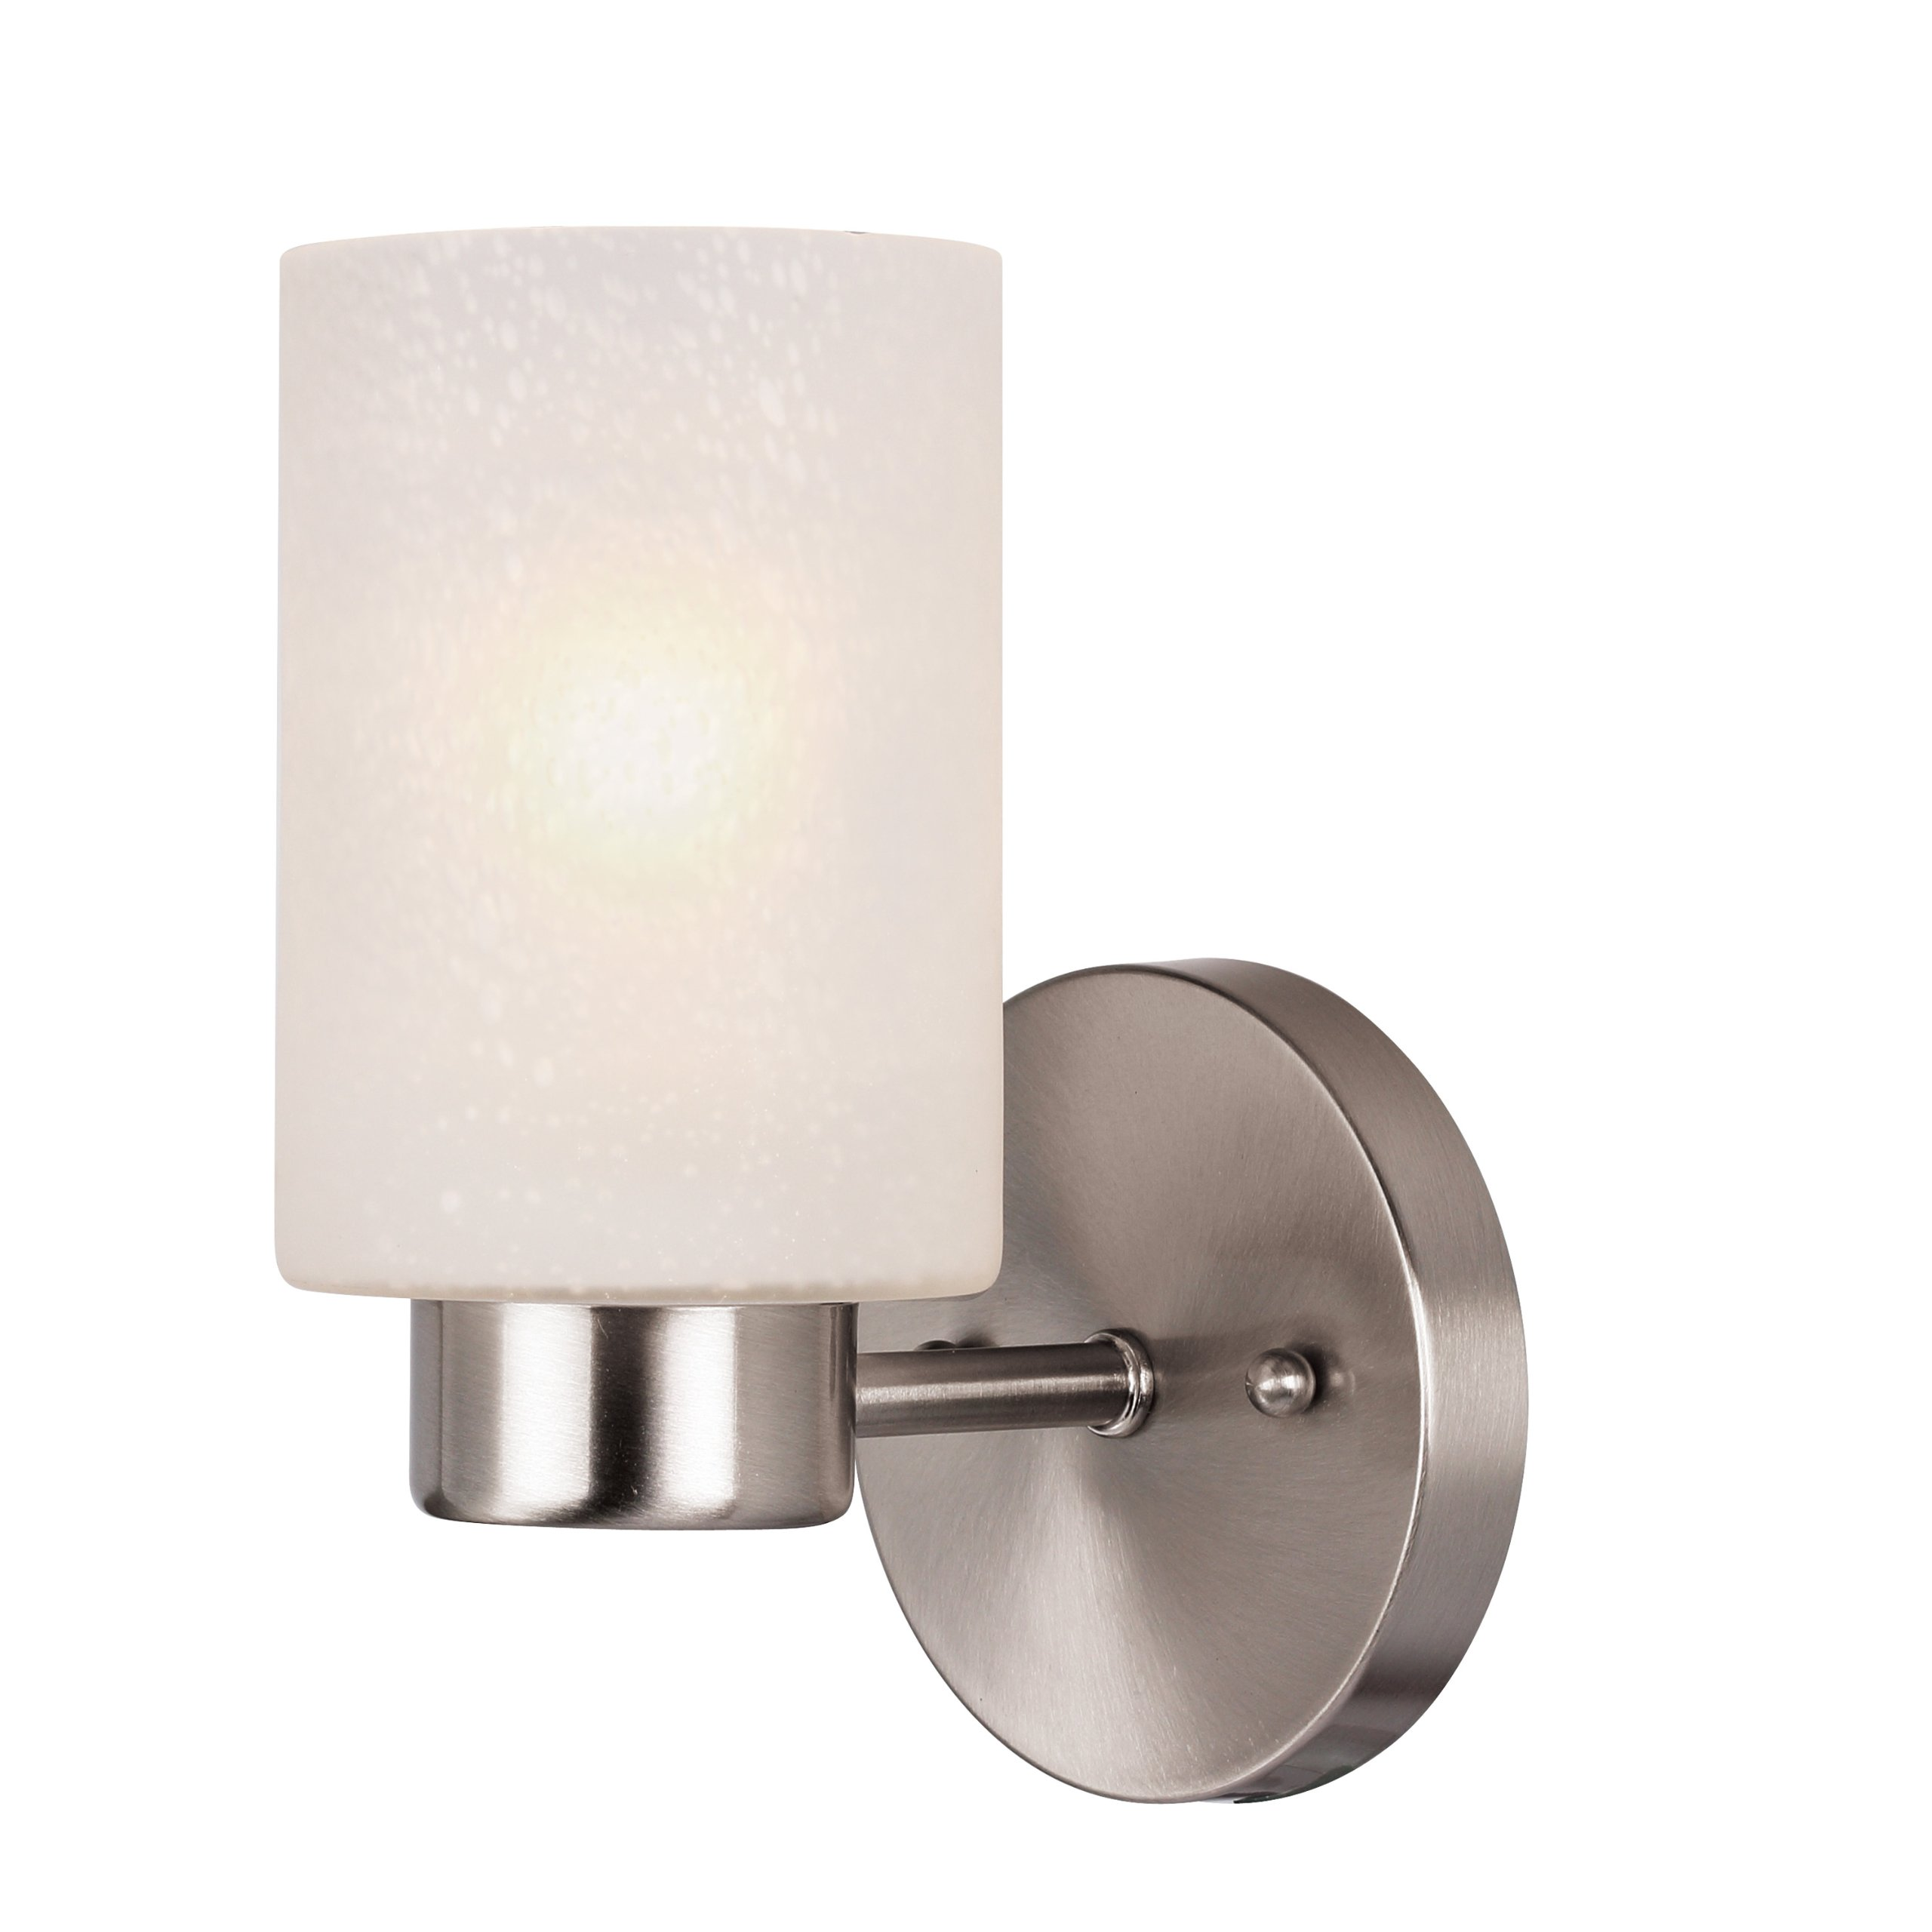 Westinghouse 6227800 Sylvestre One-Light Indoor Wall Fixture, Brushed Nickel Finish with Frosted Seeded Glass